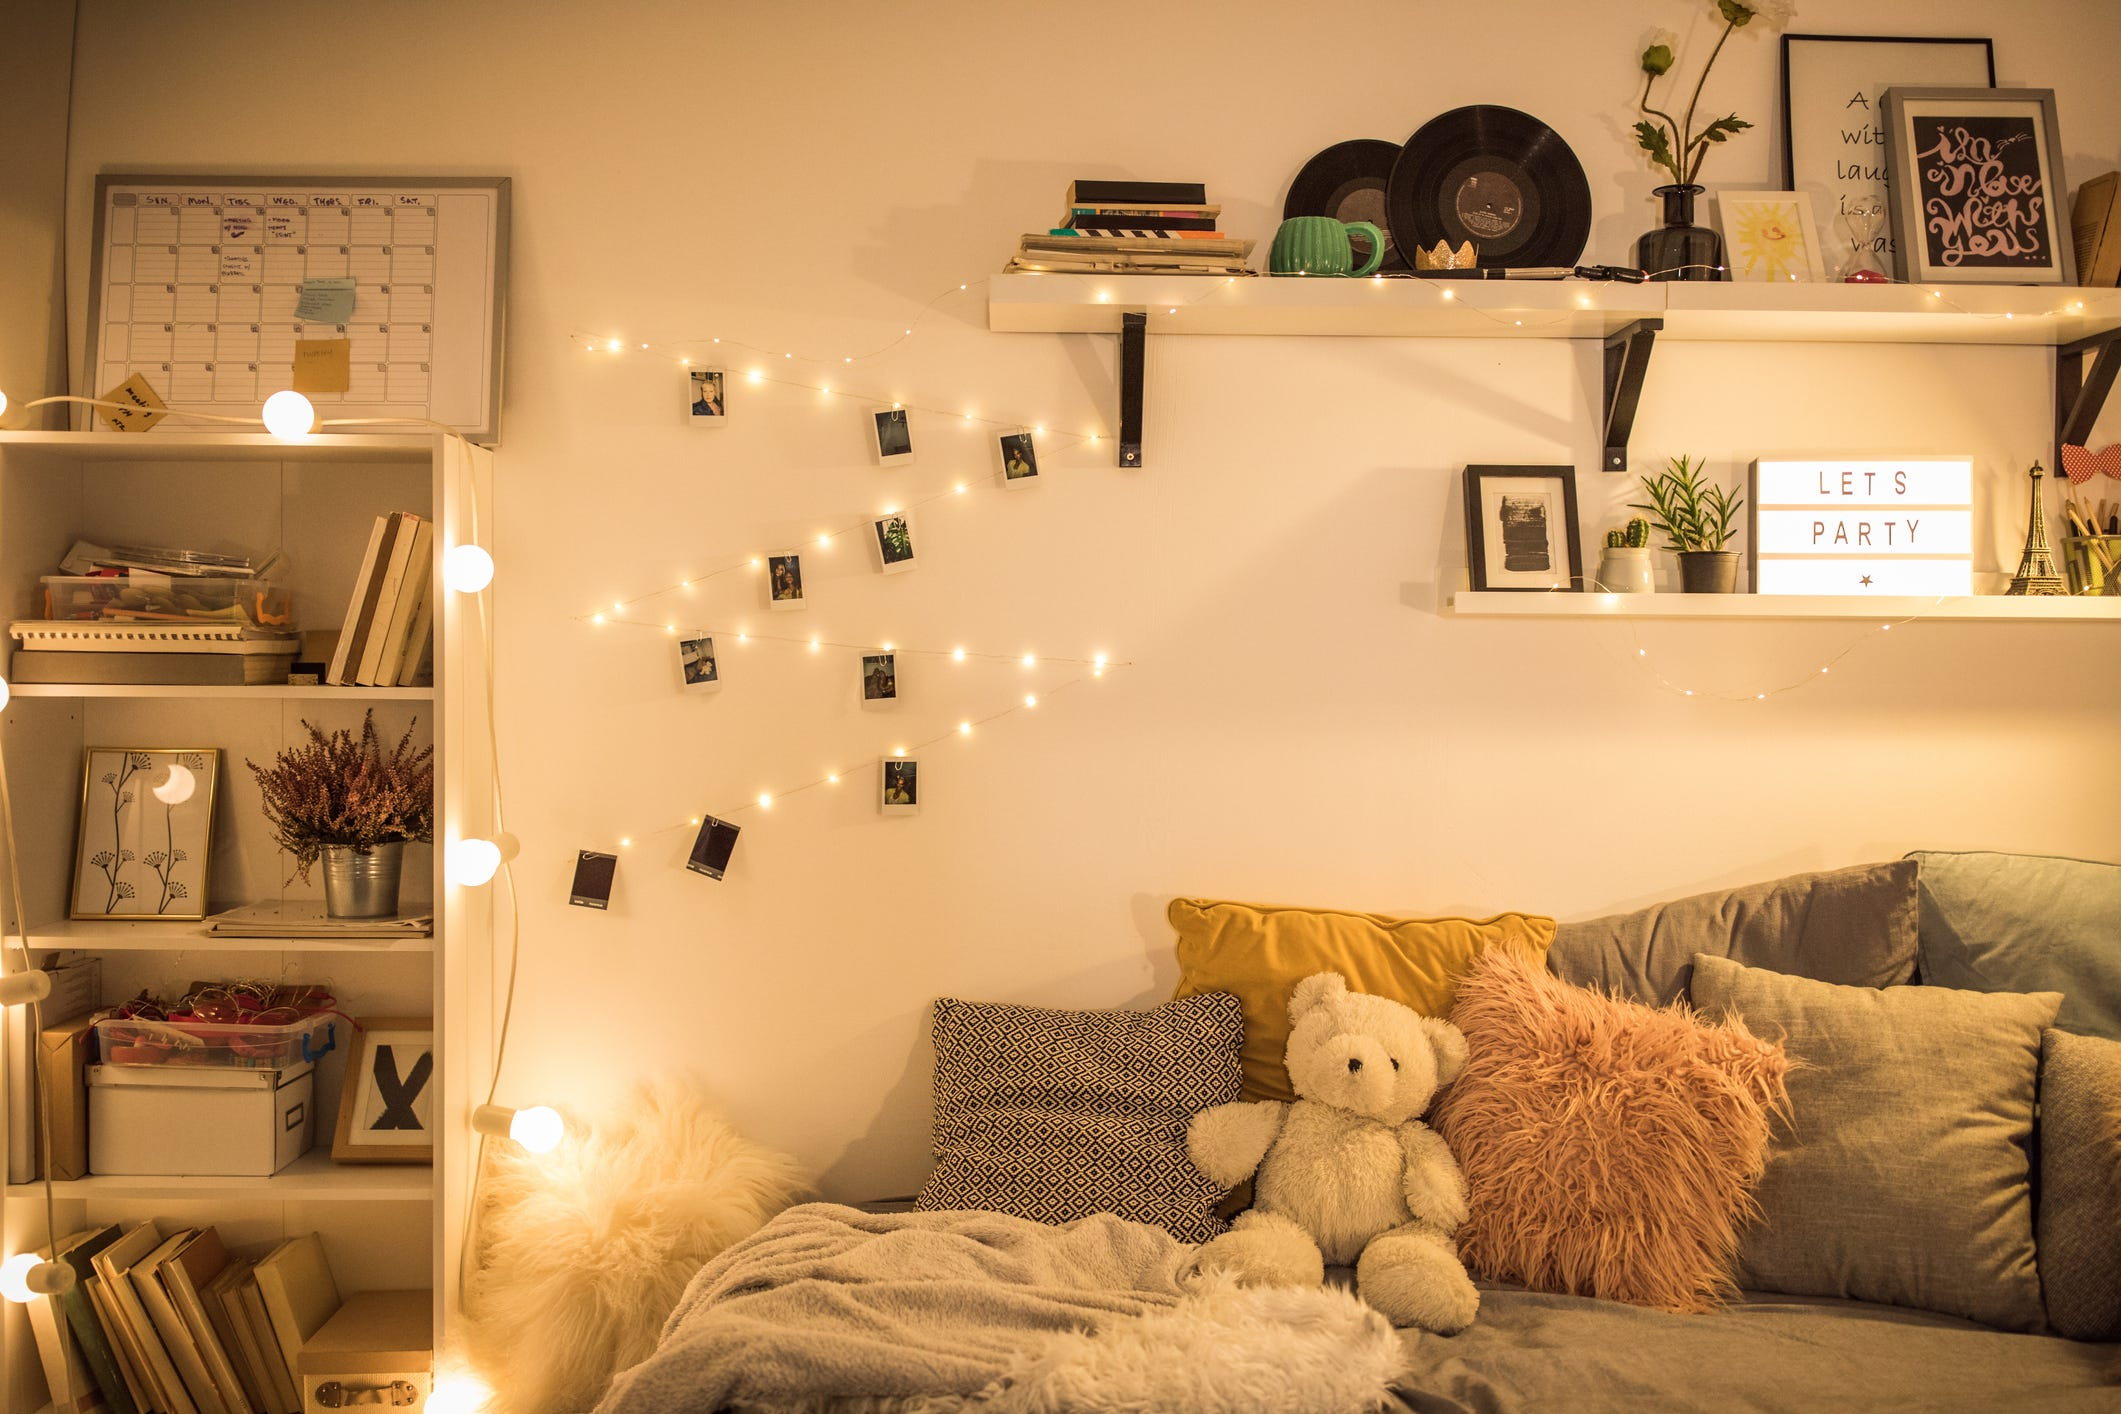 Dorm room decor: 26 big ideas for a happy move-in day